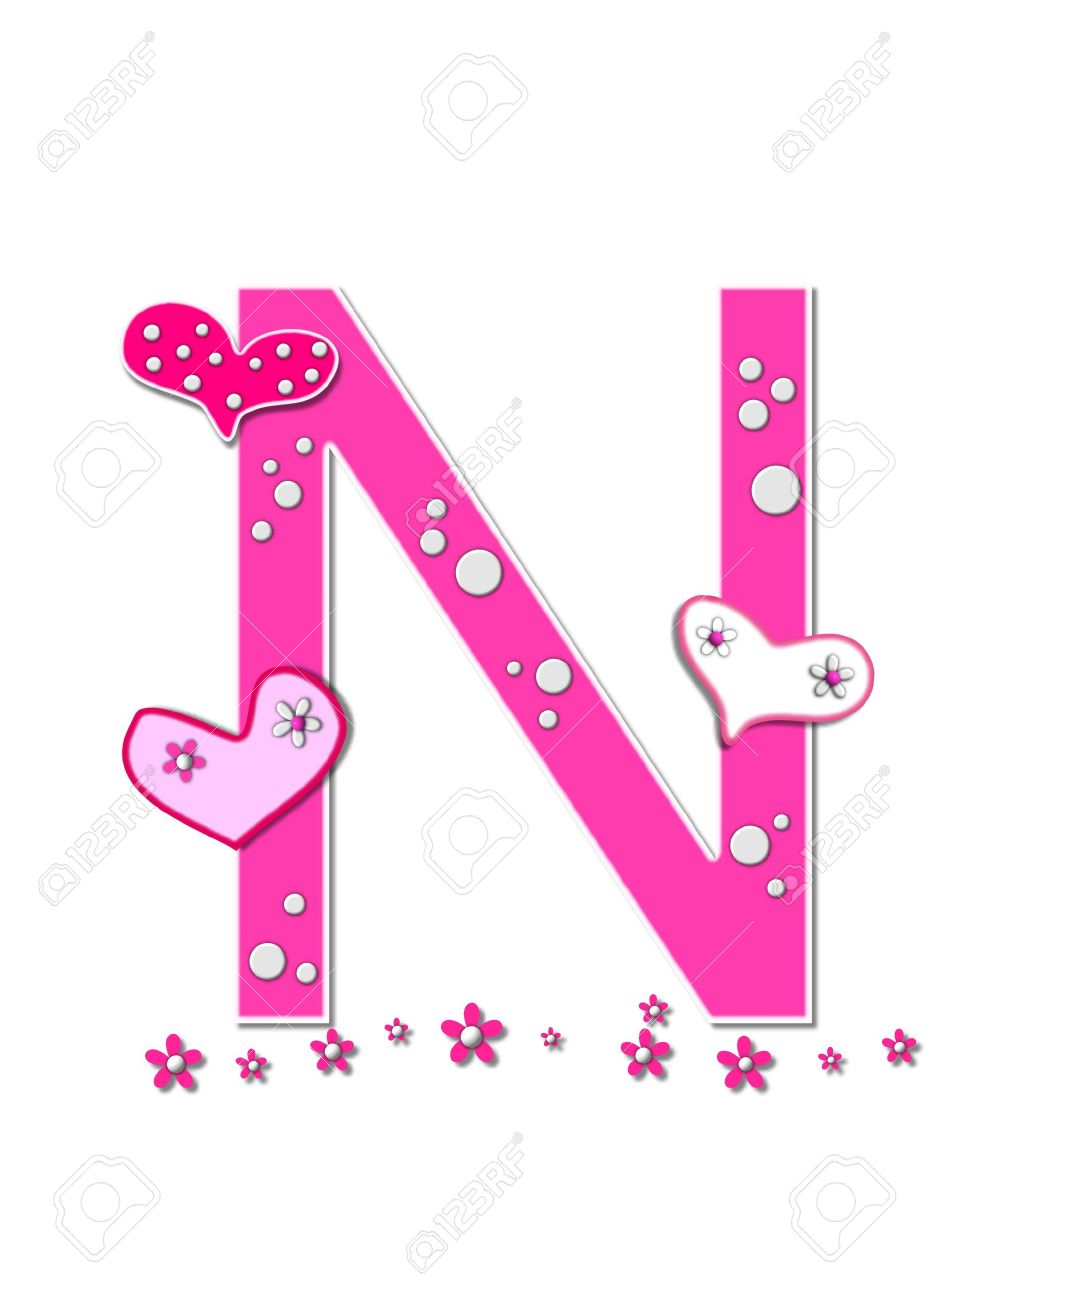 stock photo the letter n in the alphabet set heartfull is pink outlined with white polka dots and hearts decorate letter with a line of pink flowers at